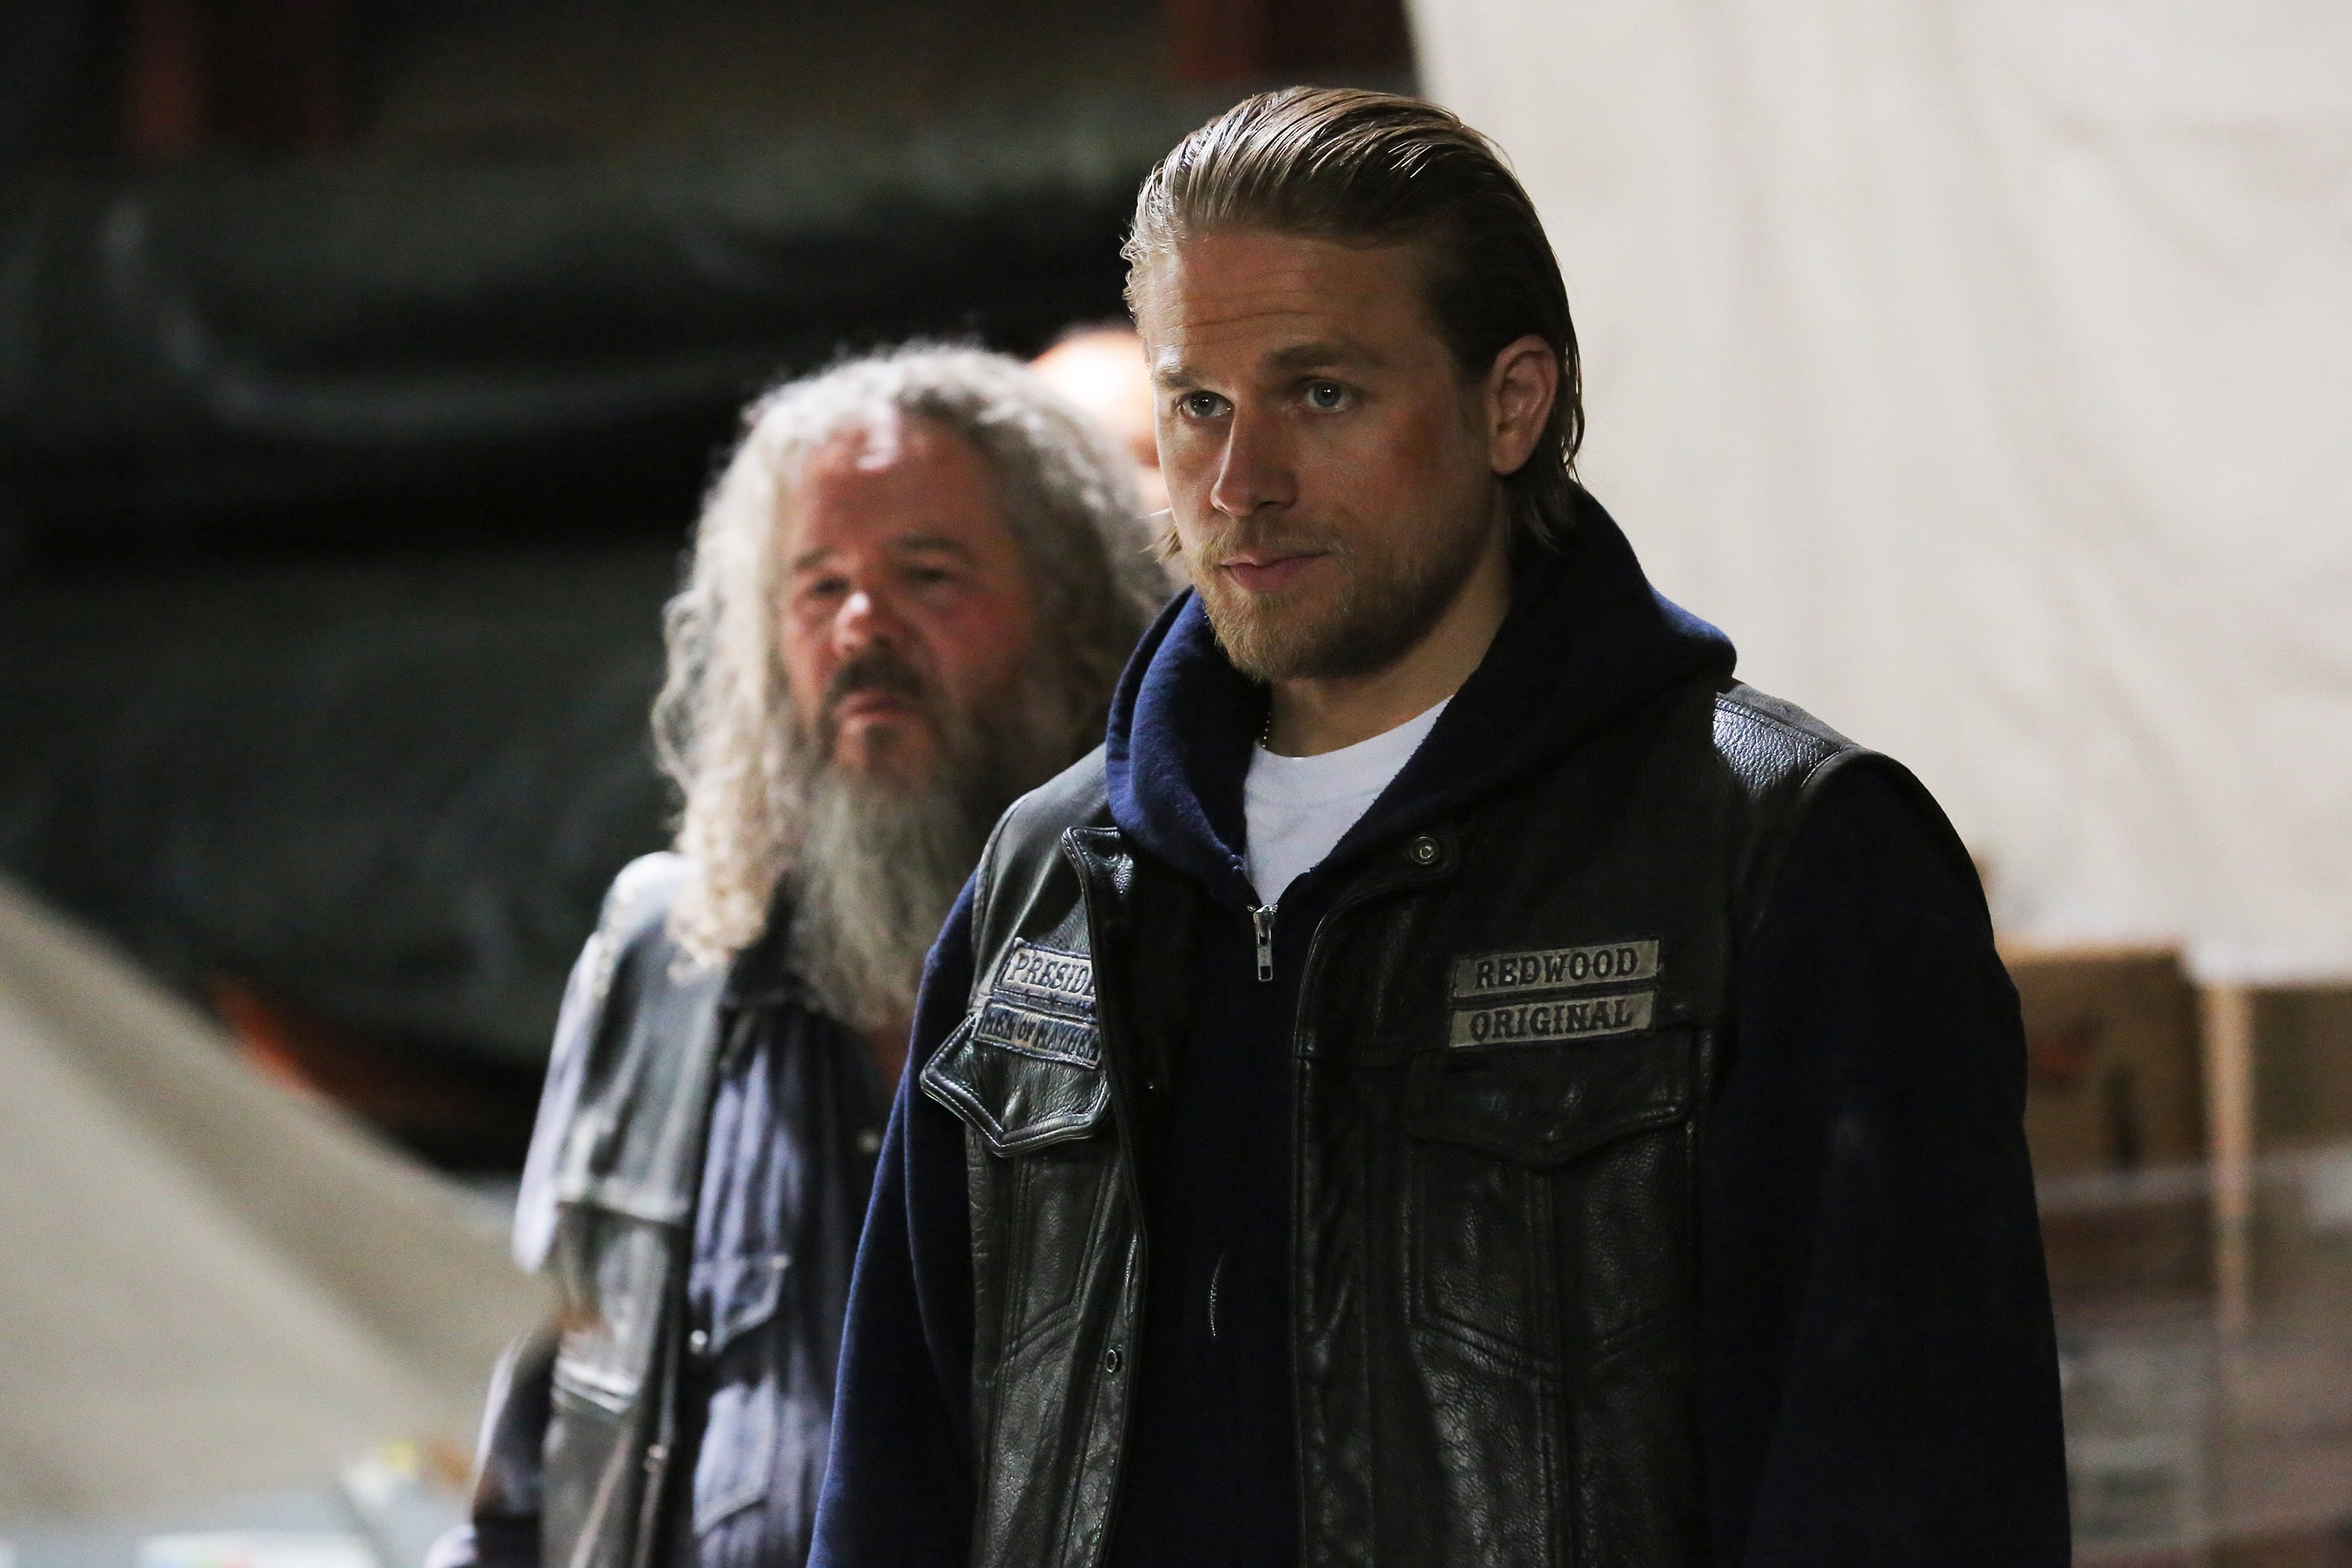 sons of anarchy season 2 episode 7 review